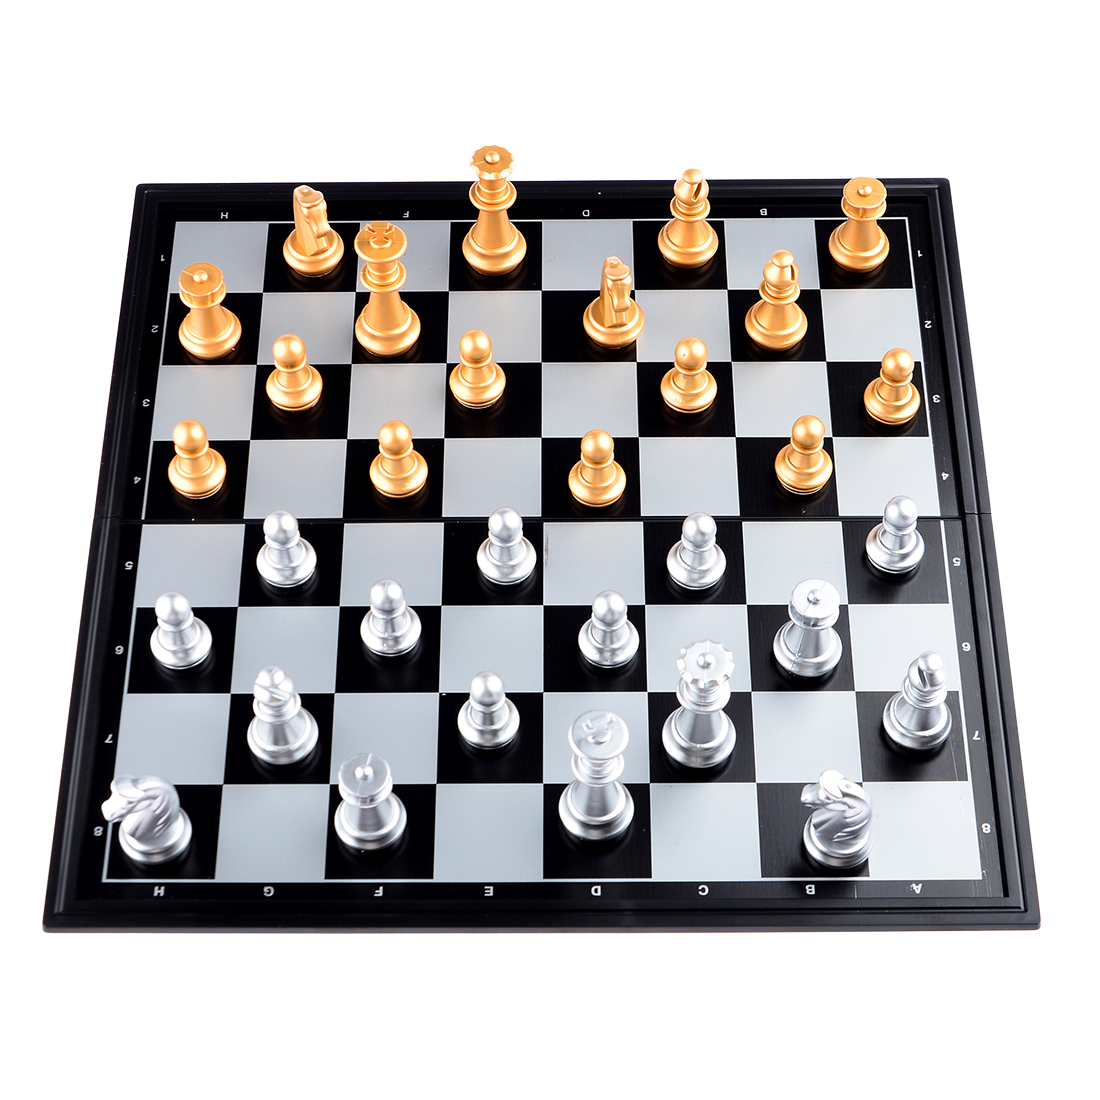 Cool chess chess board buy arthr magnetic chess board family game cheap chess set - Coolest chess boards ...